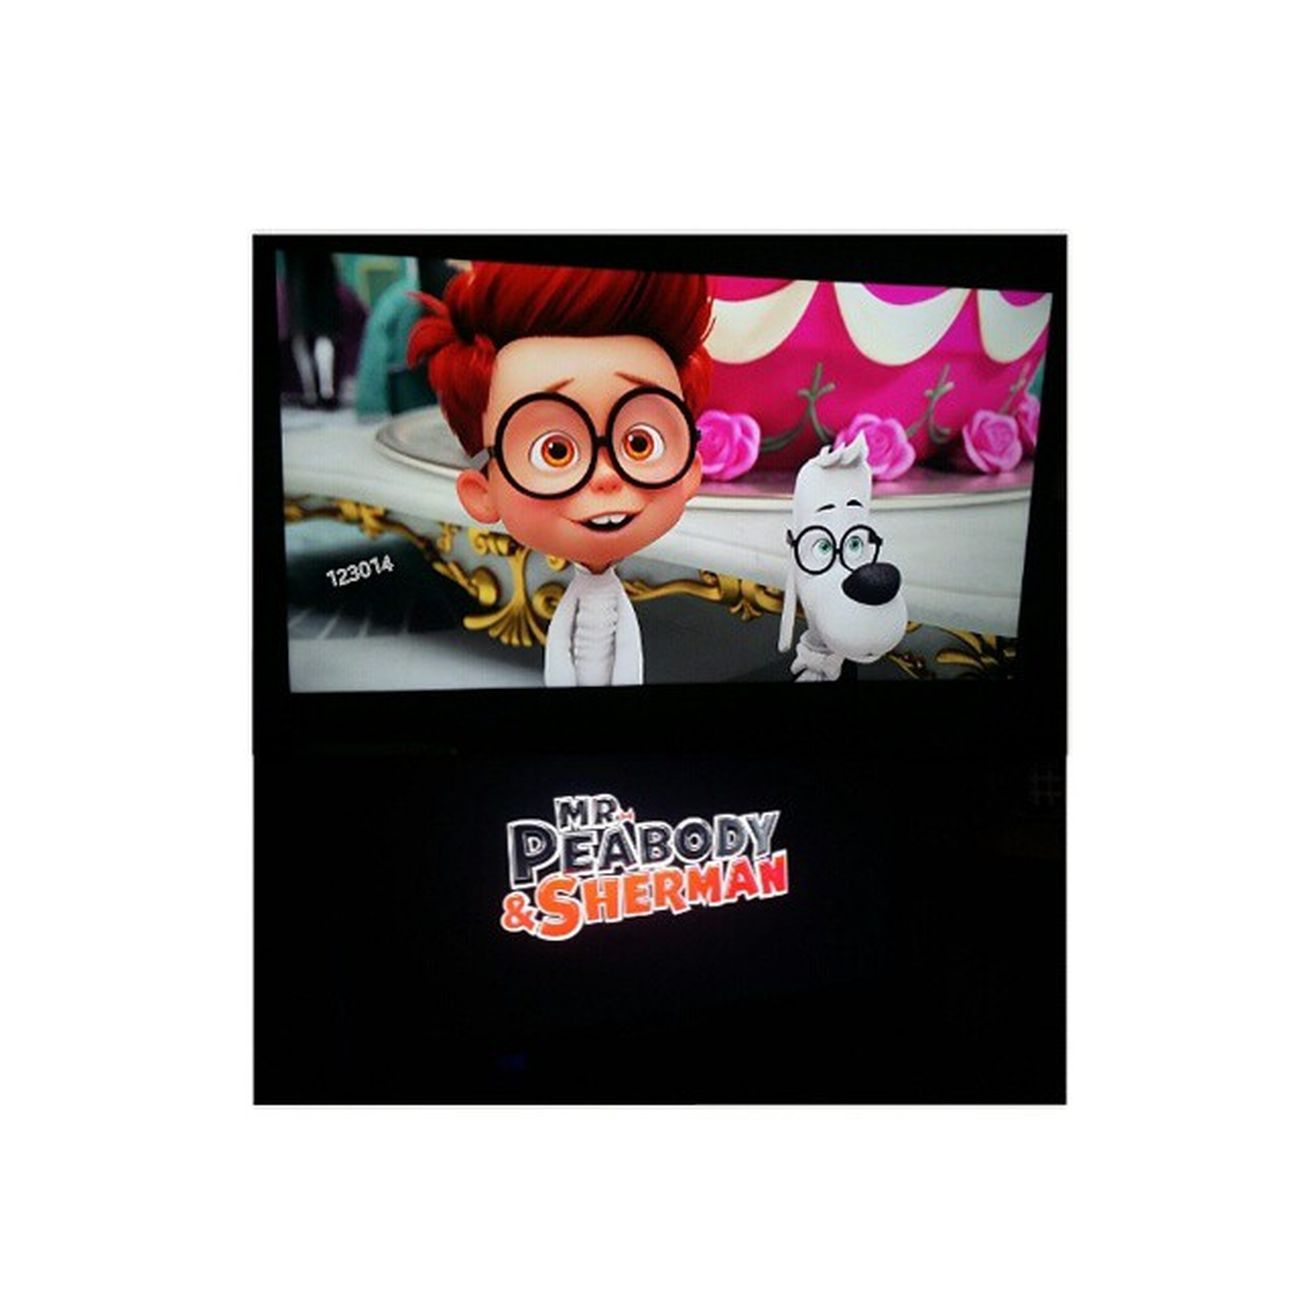 "now watching ""Mr. Peabody & Sherman"" BoredEh Nicemov ☺"